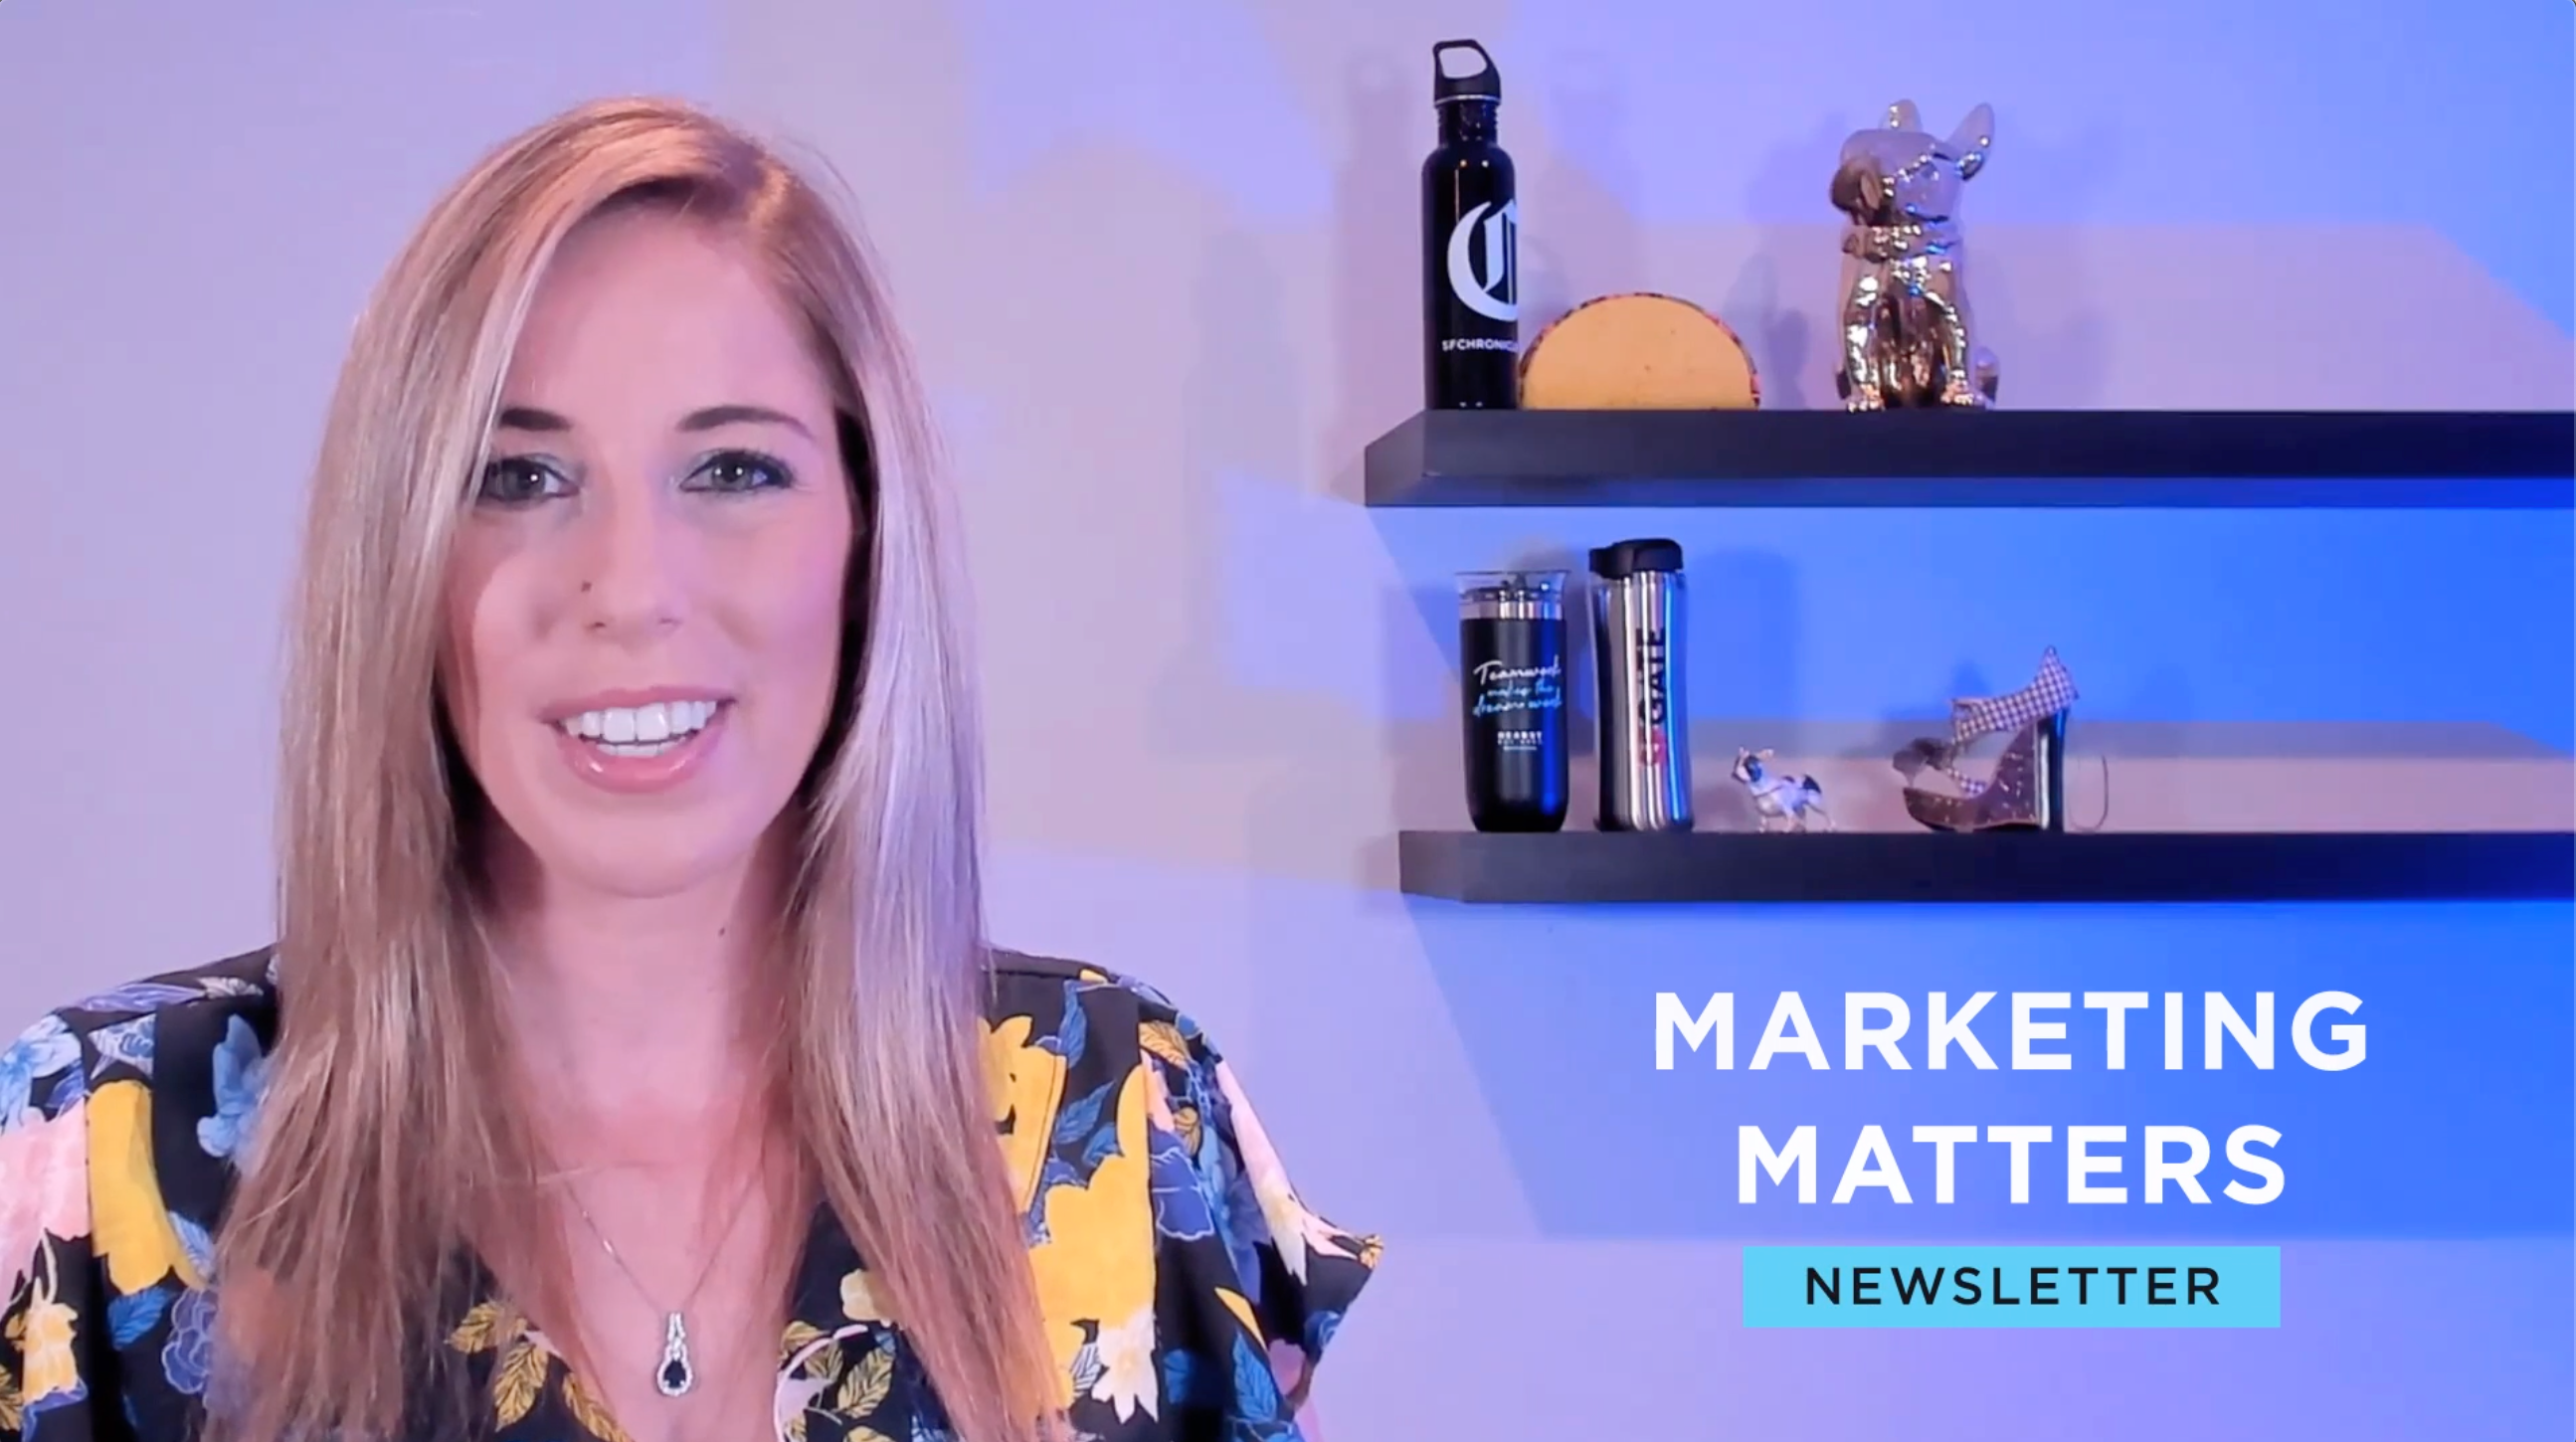 Marketing Matters Newsletter Promo Video FINAL